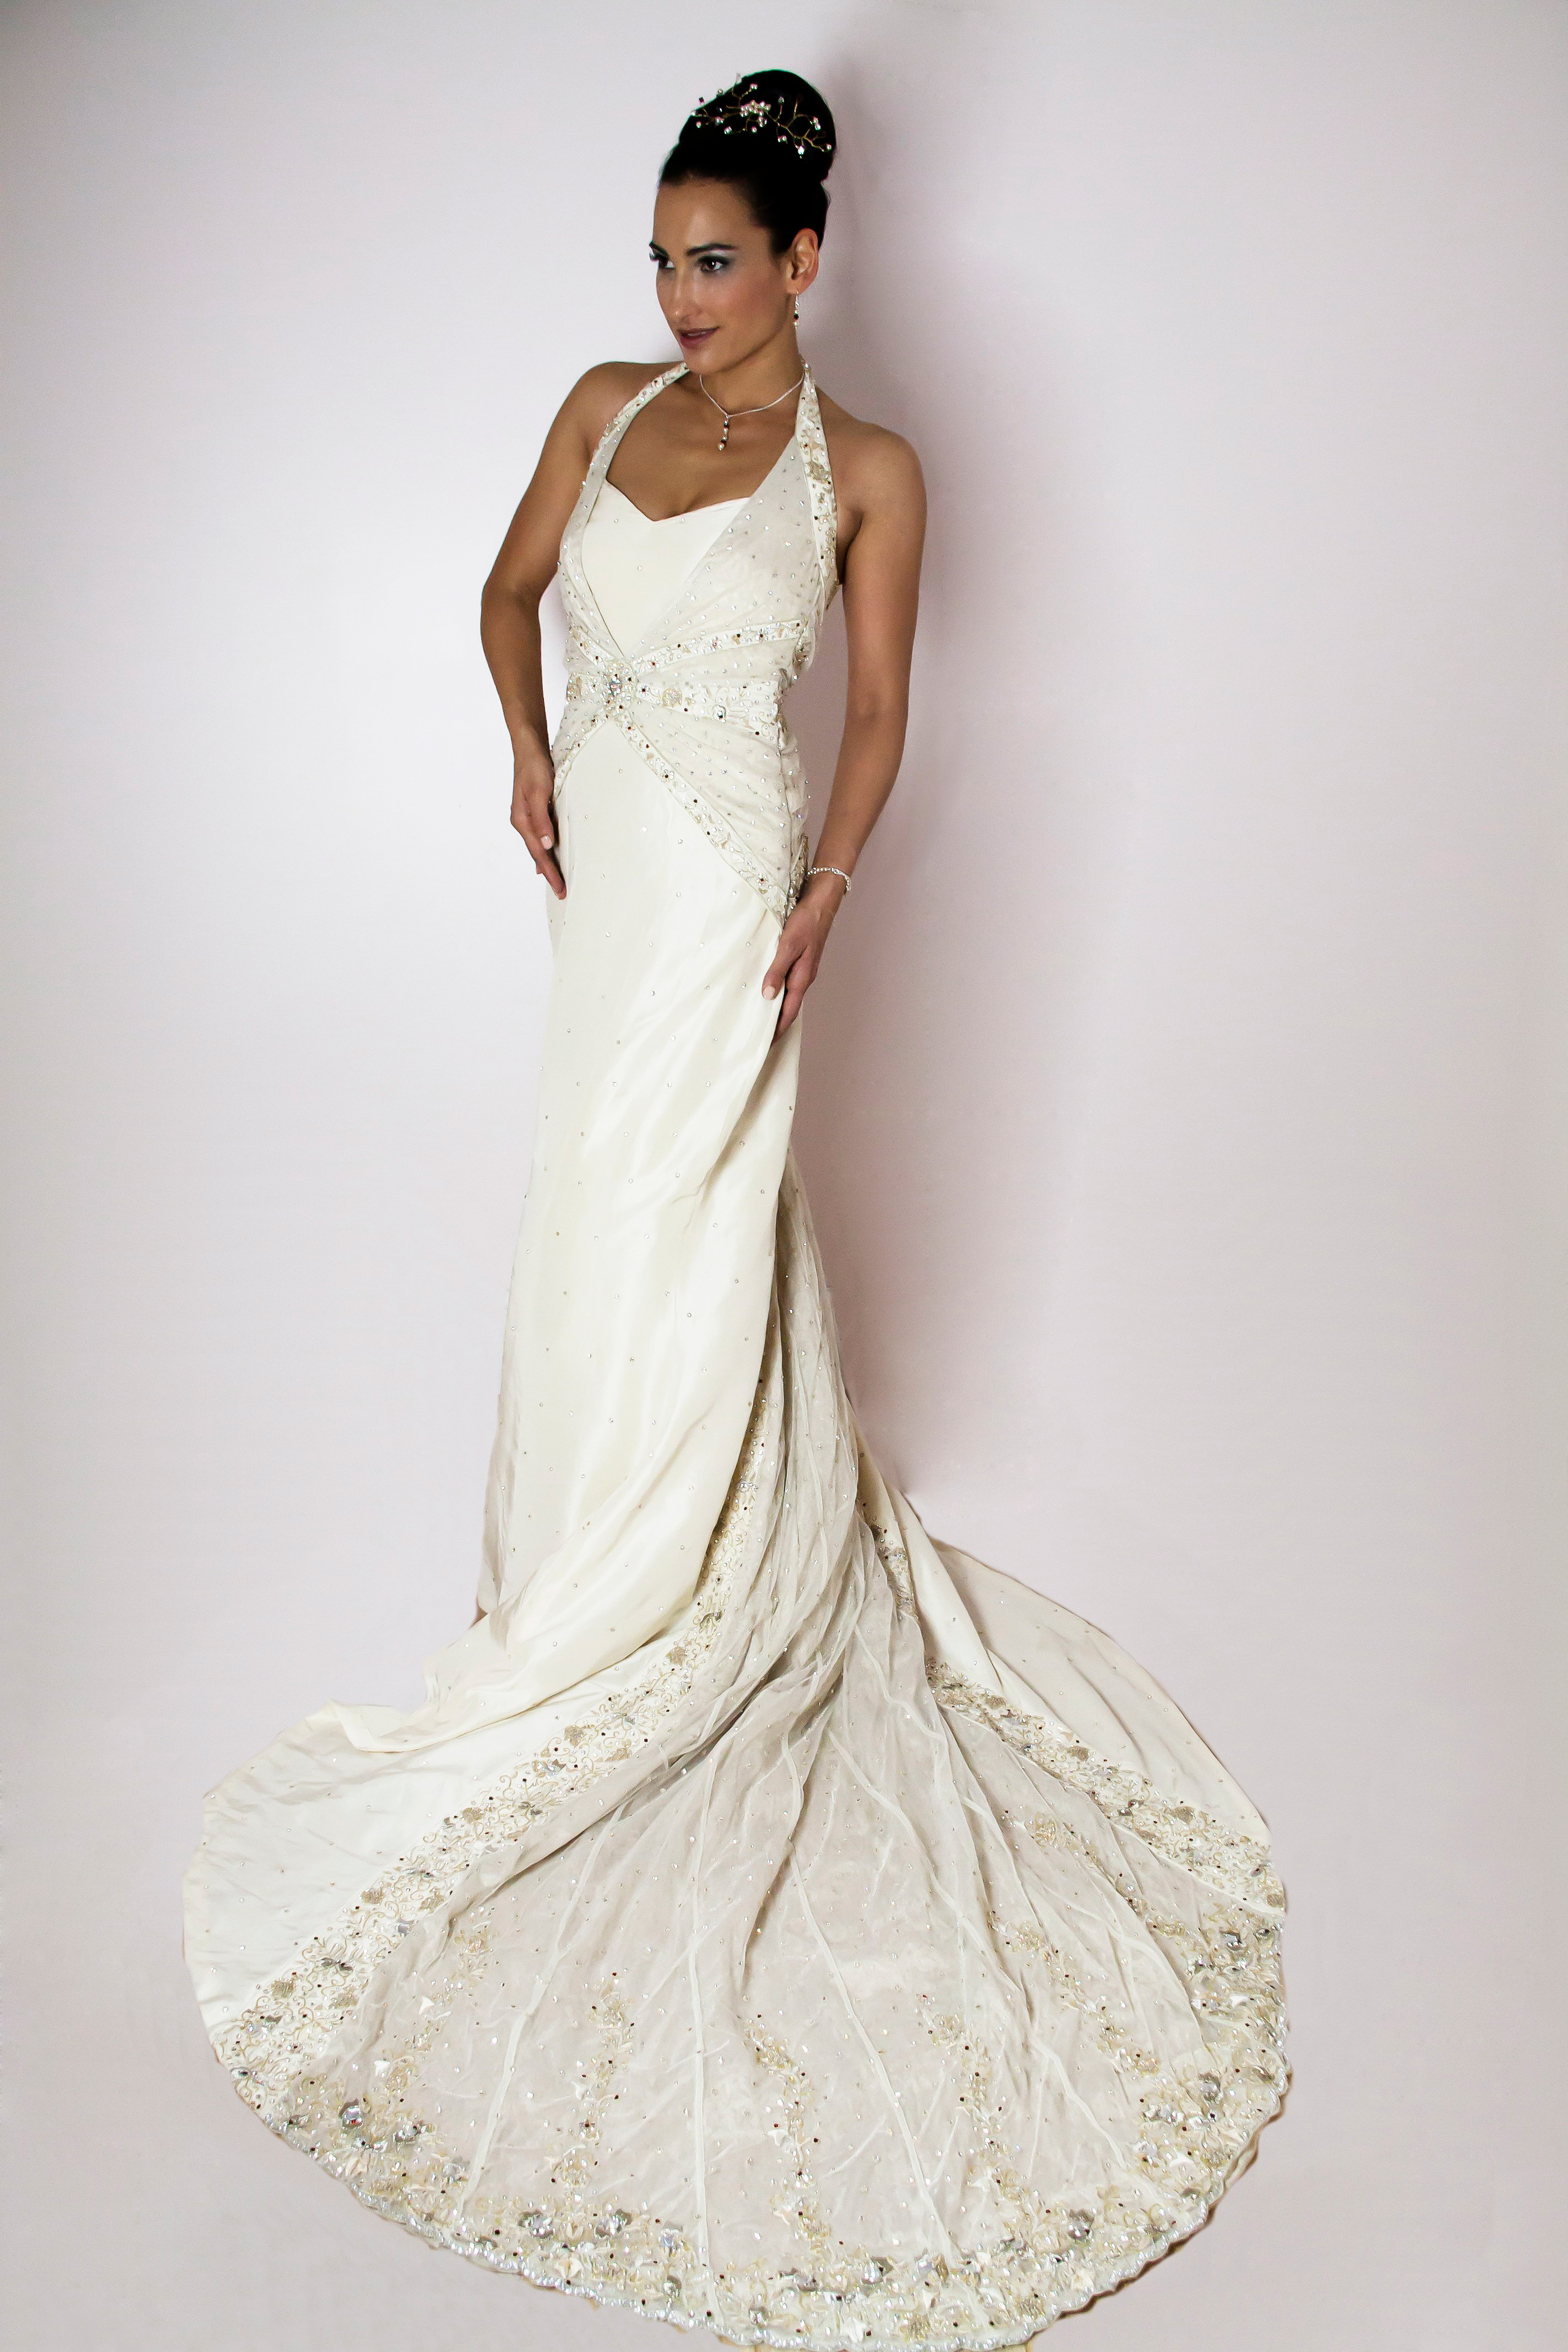 30_dress9_MG_3985-copy